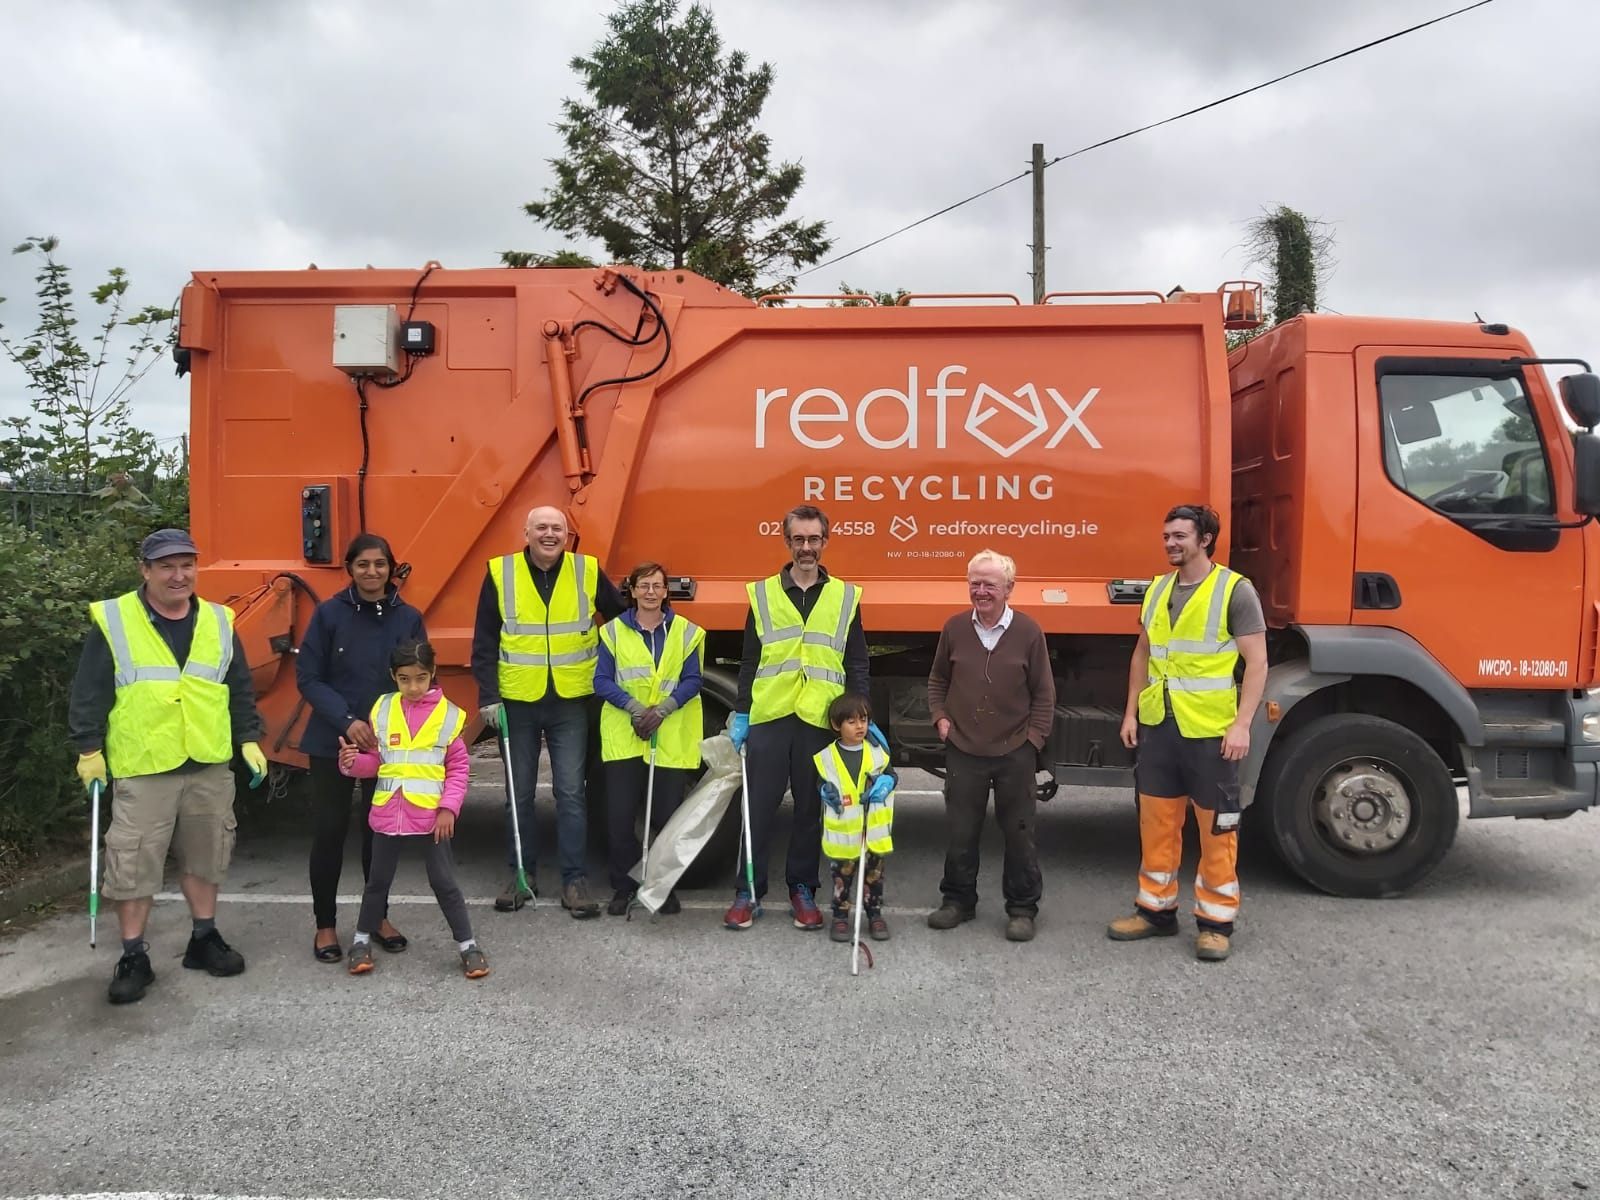 Redfox rathepacon clean up 105626171_3450508494977825_647716708587016981_o